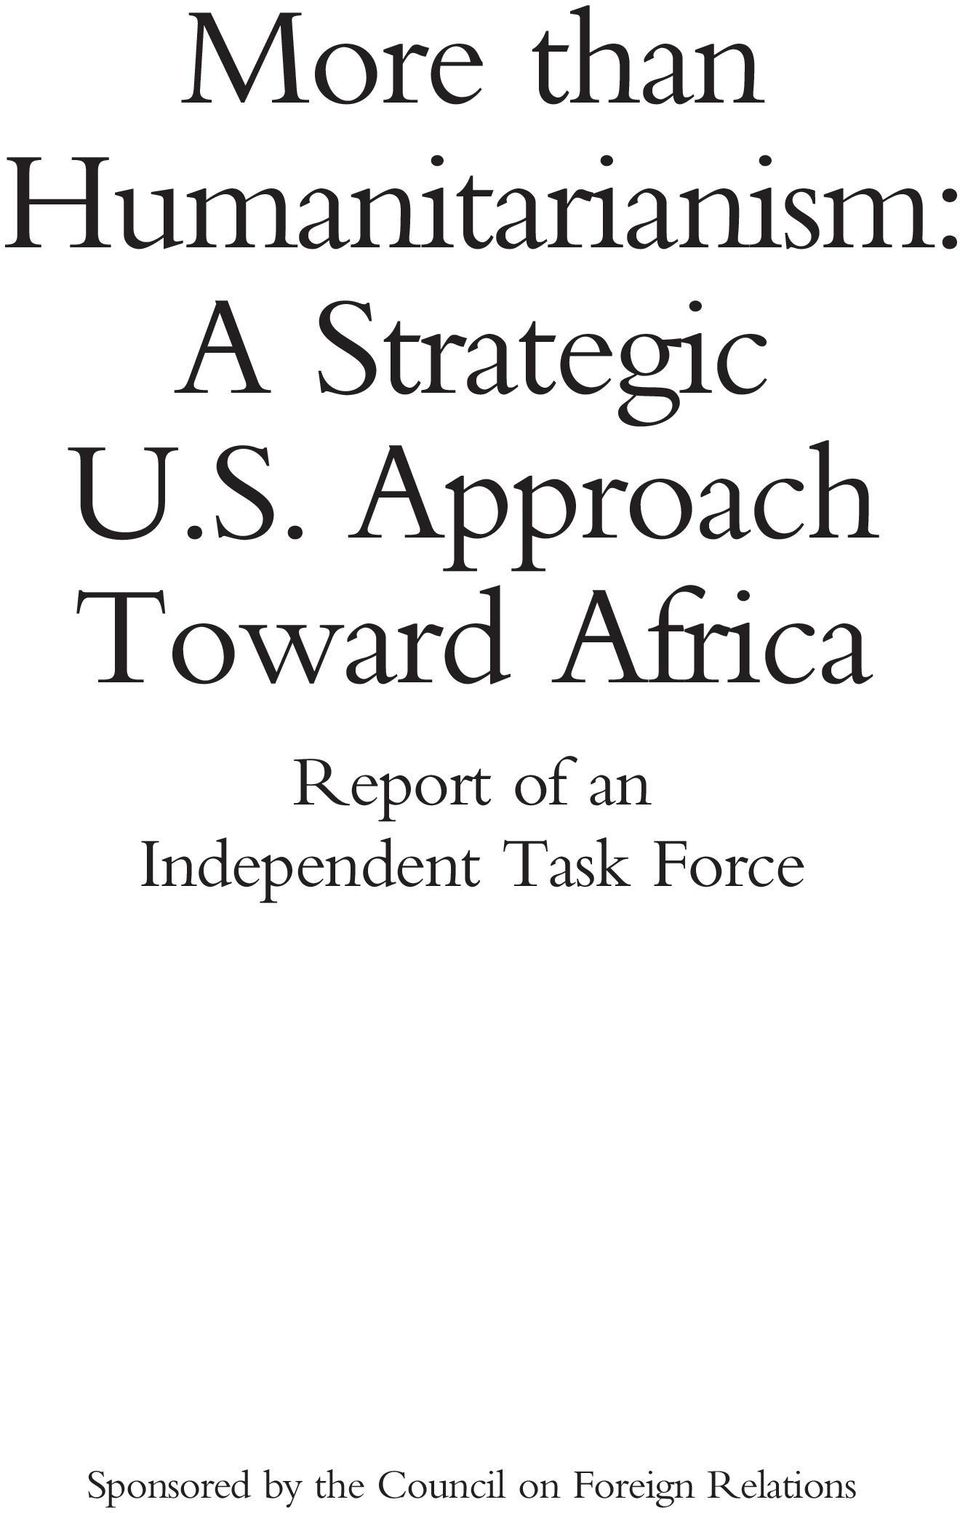 Africa Report of an Independent Task